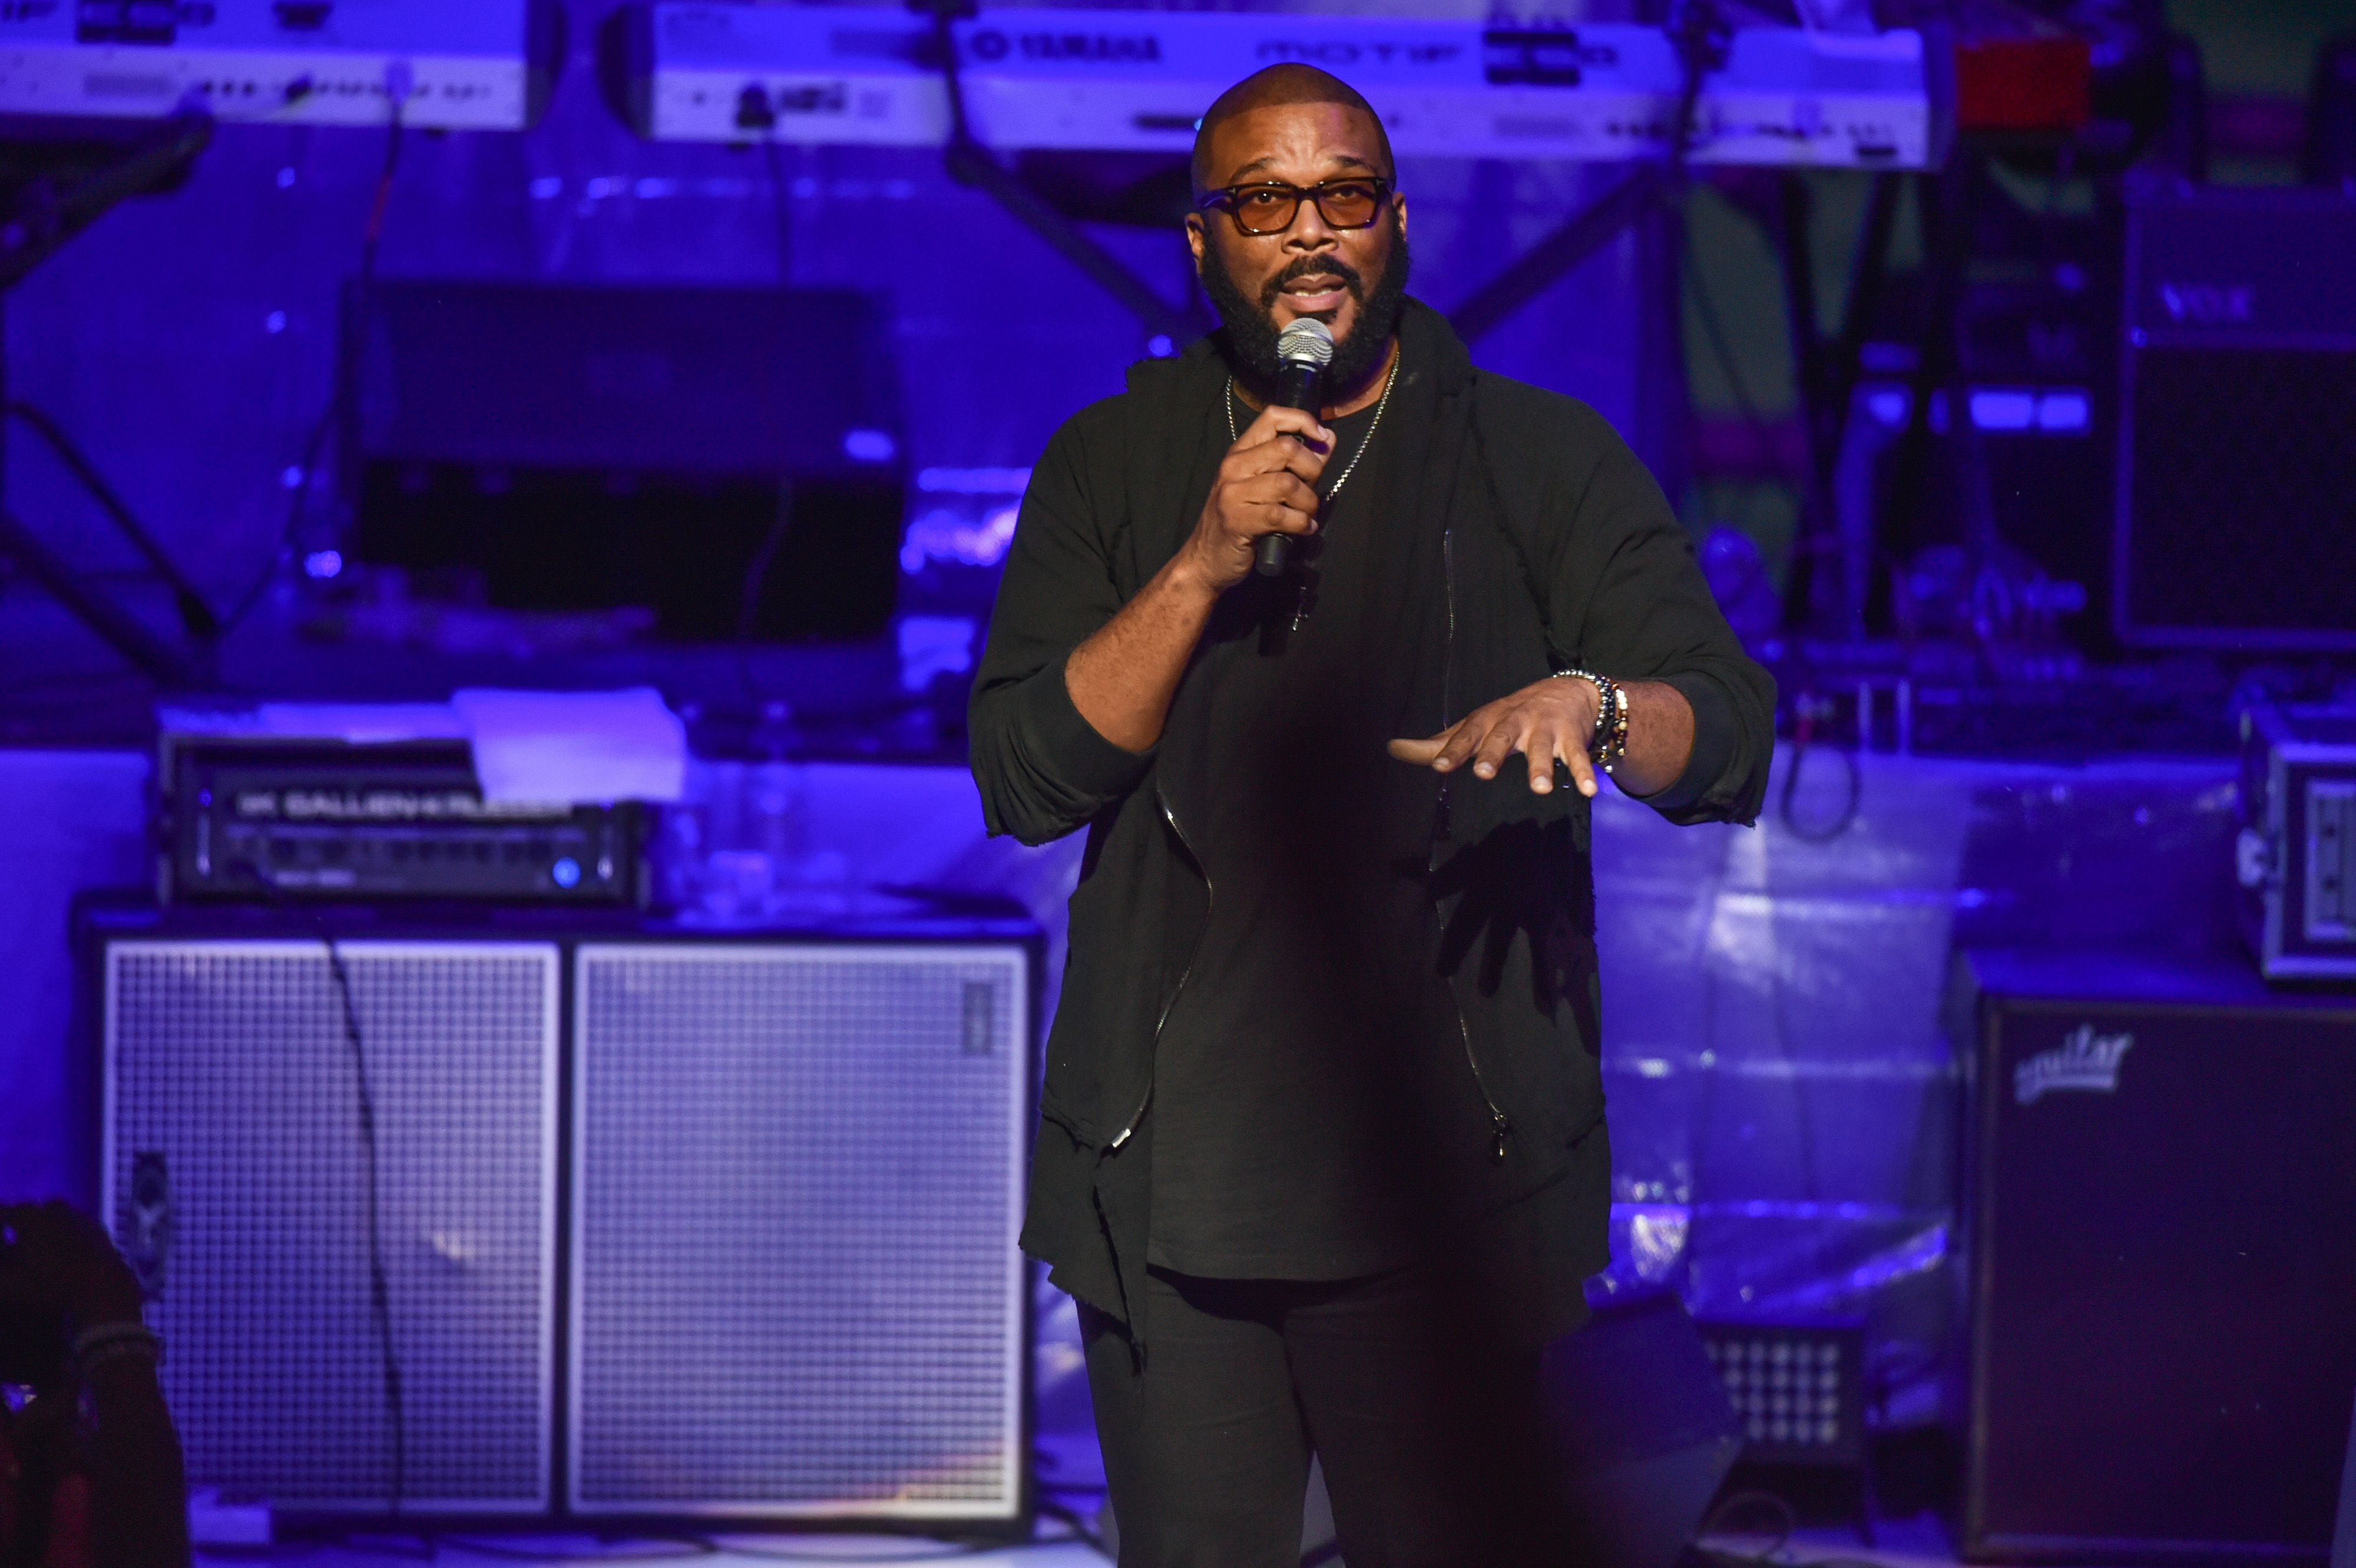 Tyler Perry Gifts A Home To The Mother Of One Of The Actors He Worked With Years Ago